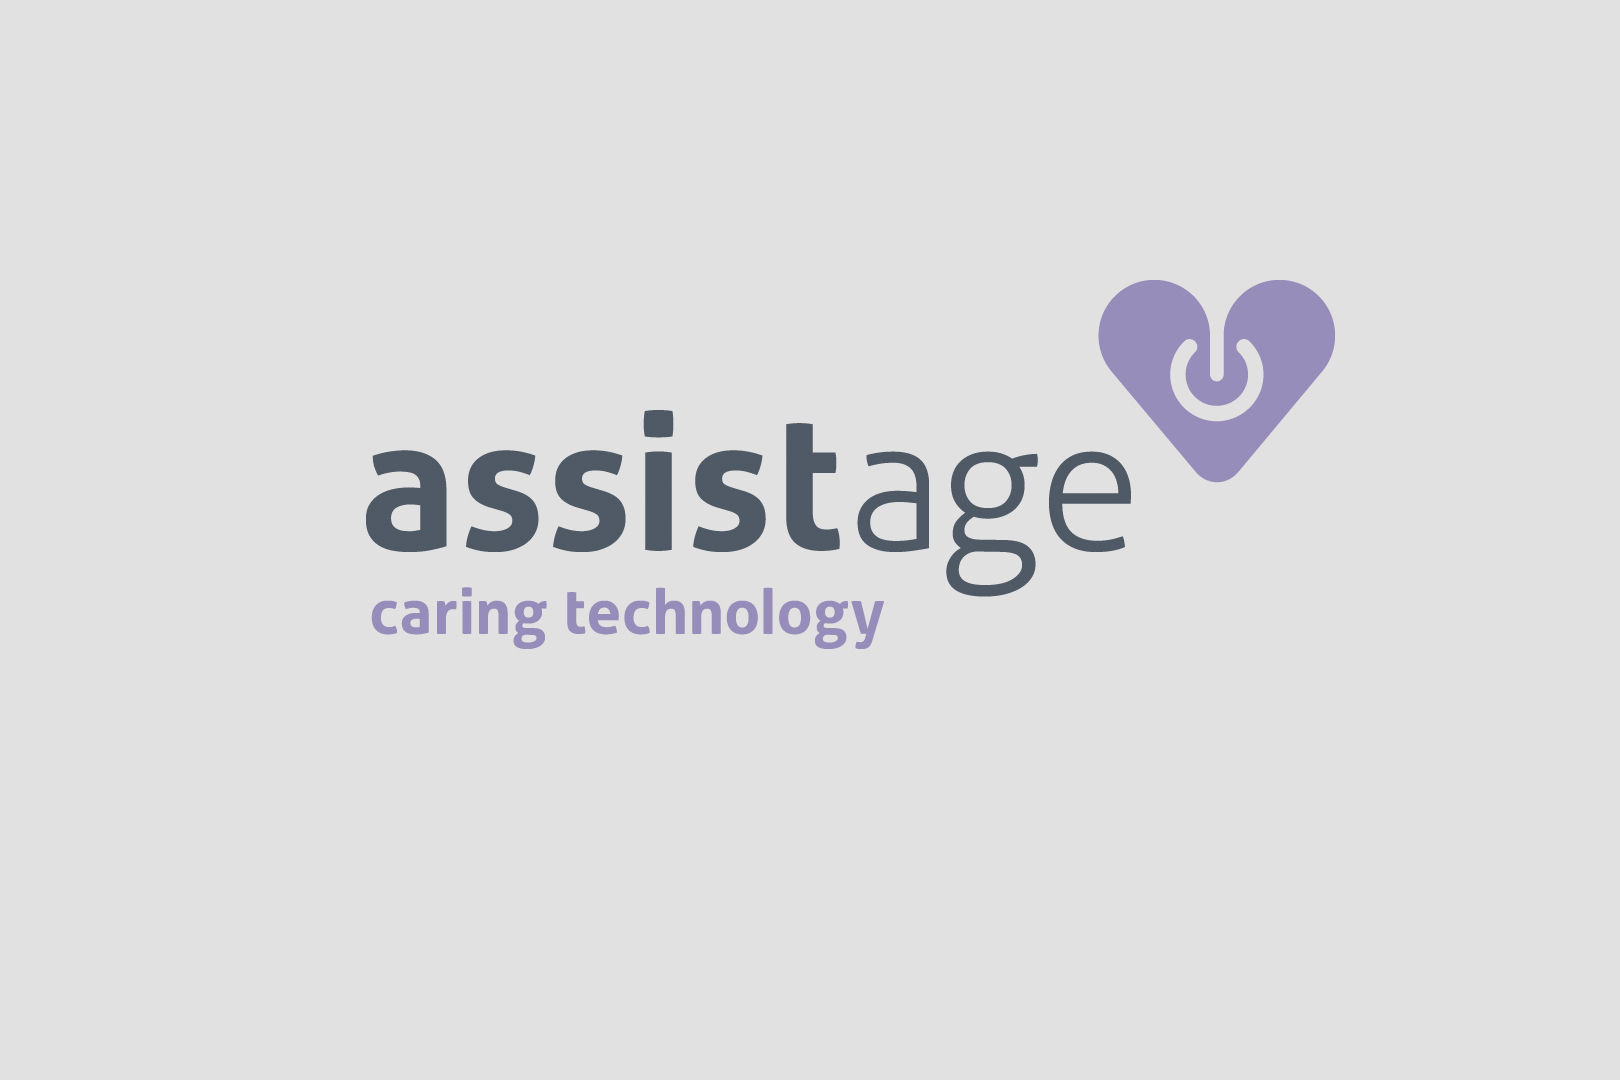 Assistage